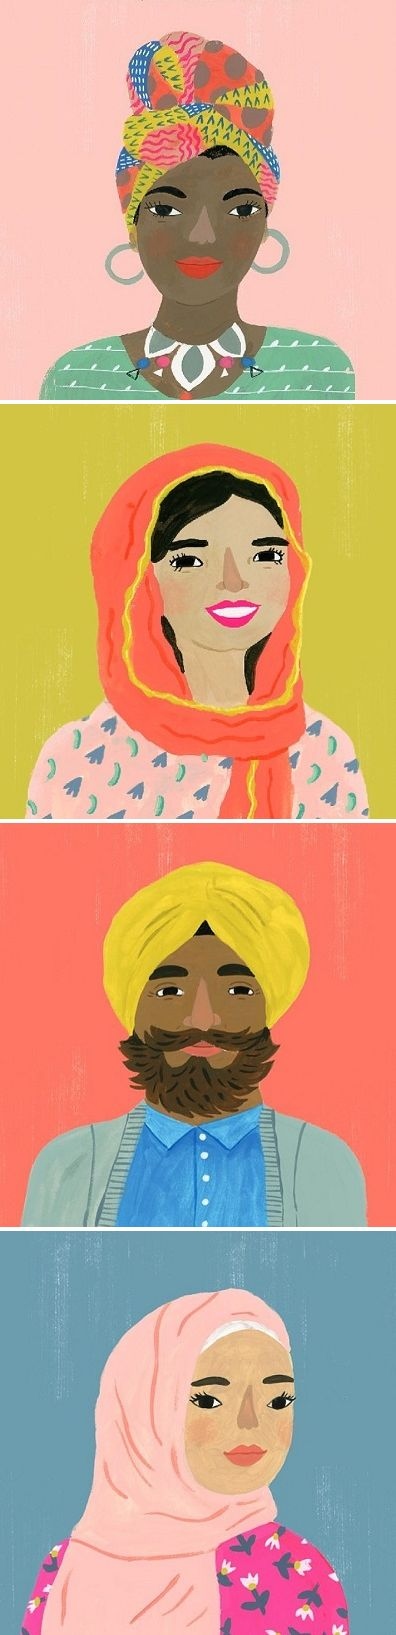 Illustration by Sarah Walsh for Hats of Faith <3